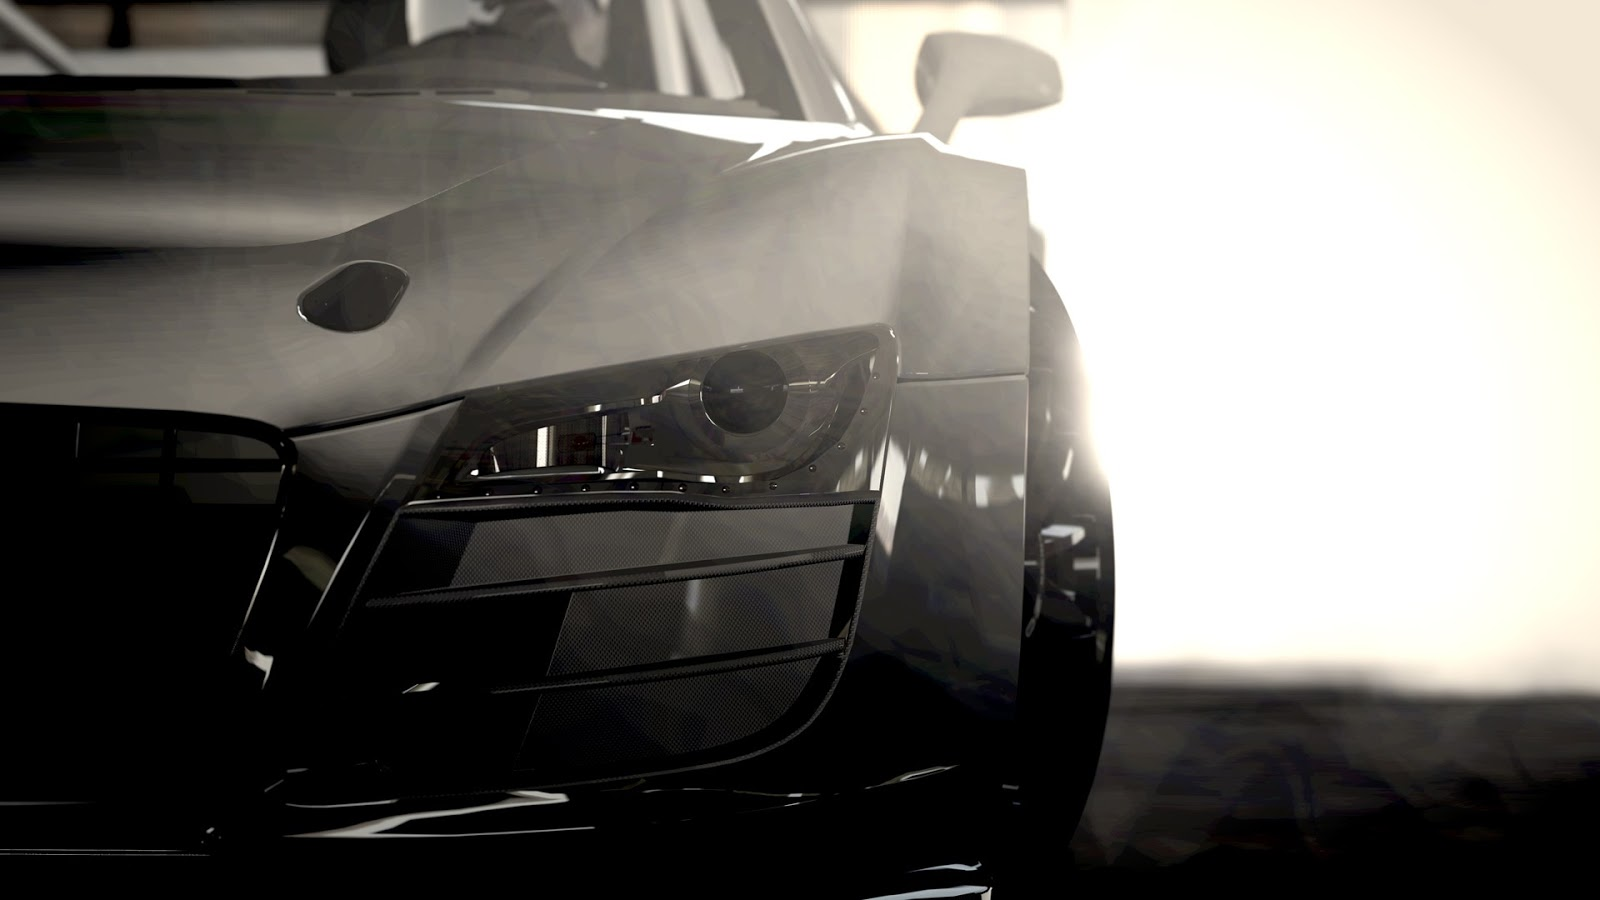 Audi R8 Headlight Section